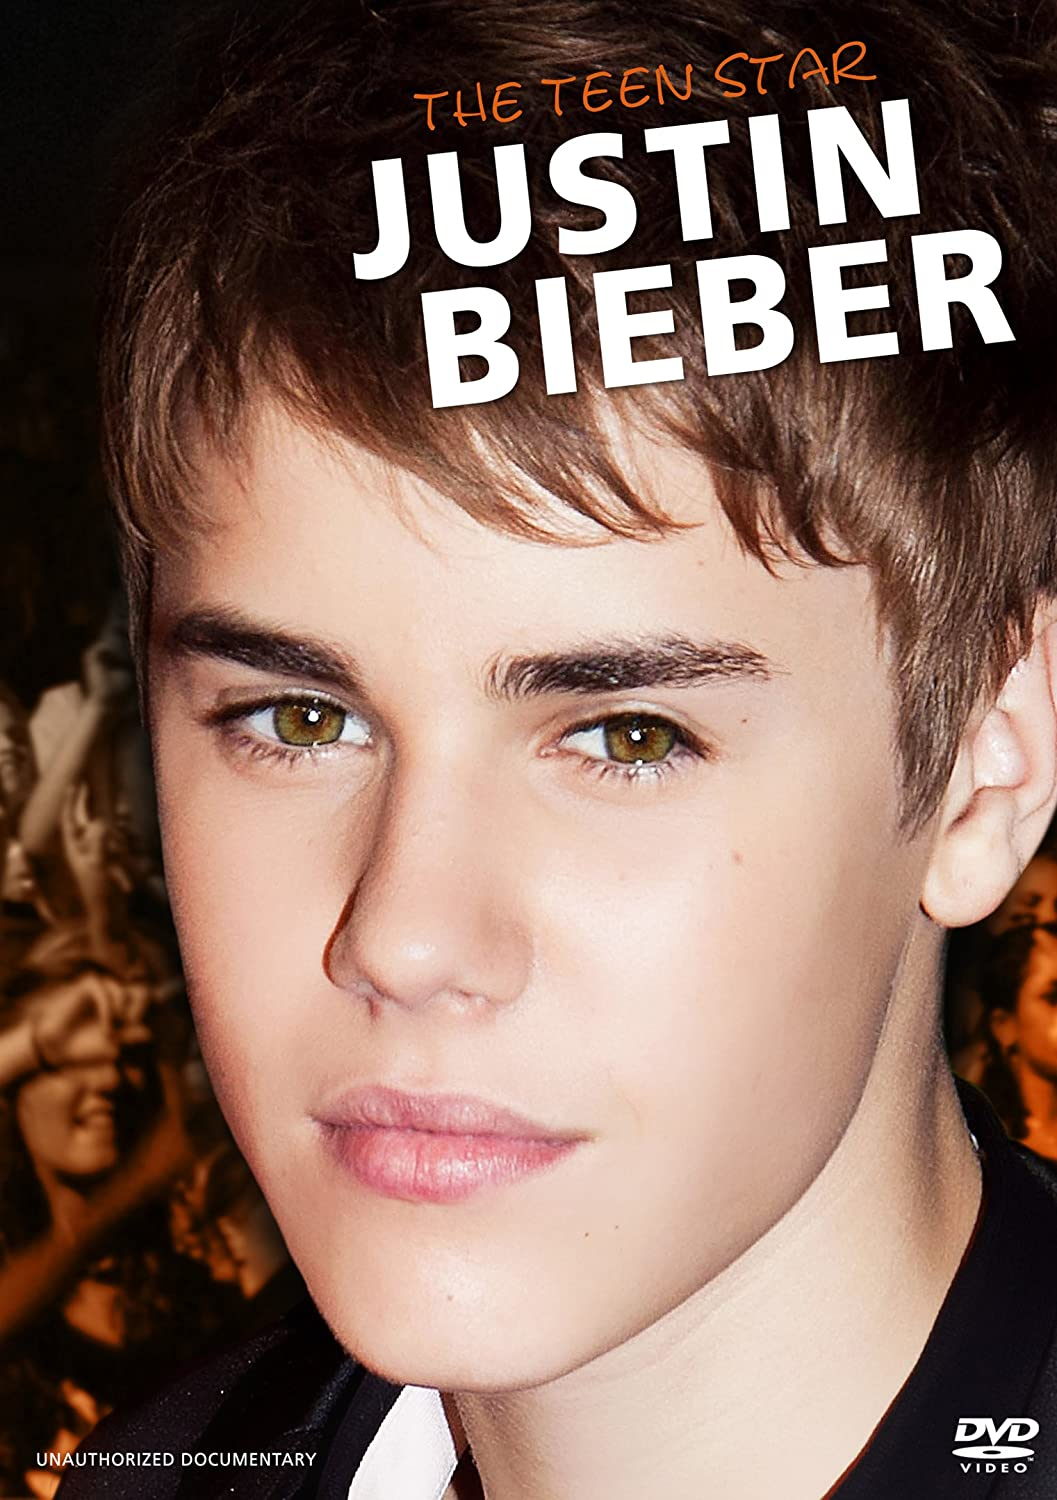 Justin Bieber: Teen Star [DVD] [2011]